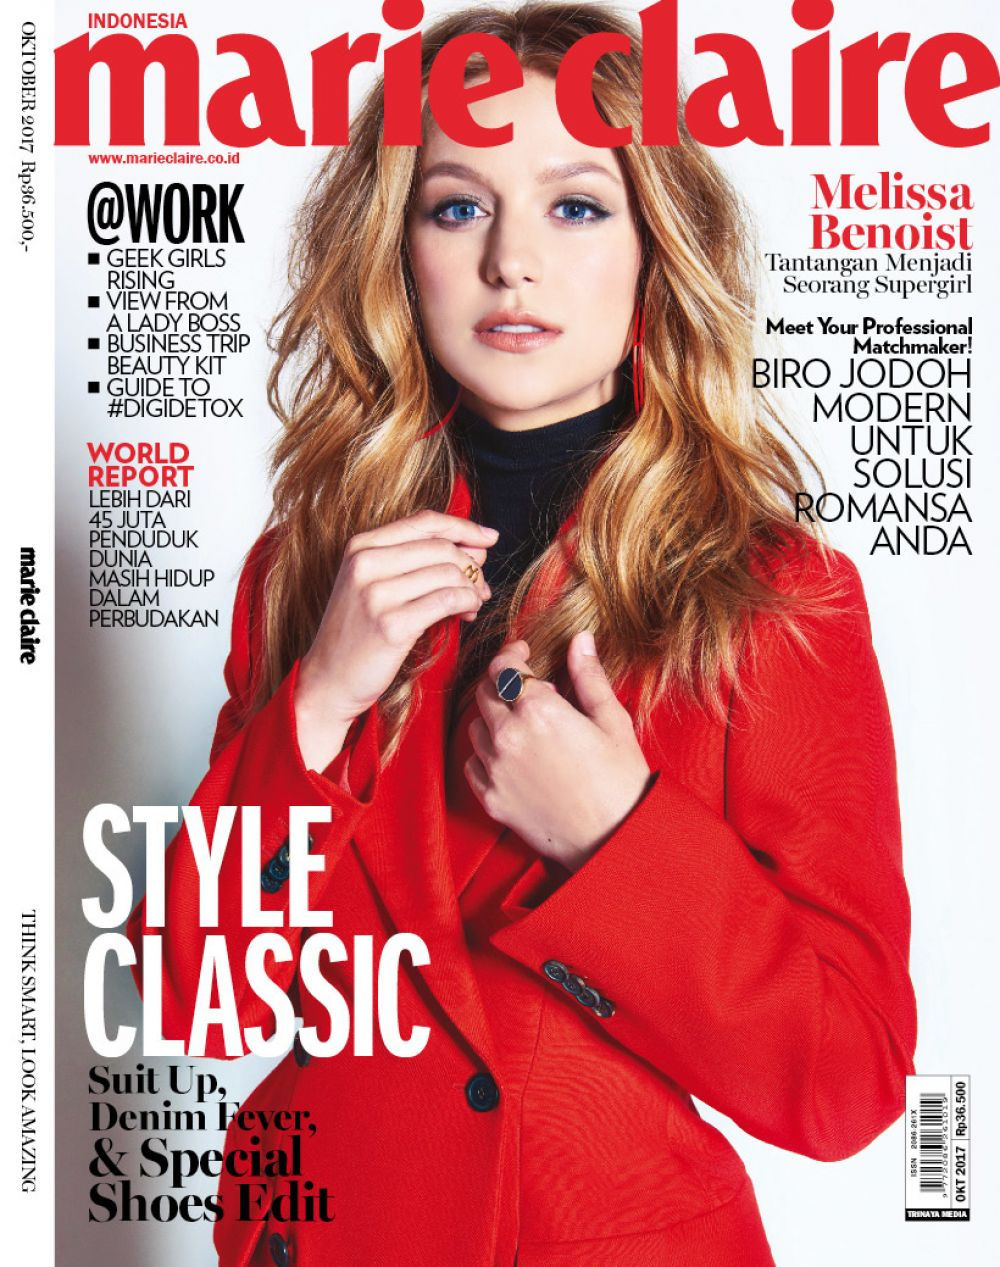 Get Marie Claire's Latest Work Magazine On Your Tablet For Only 69p